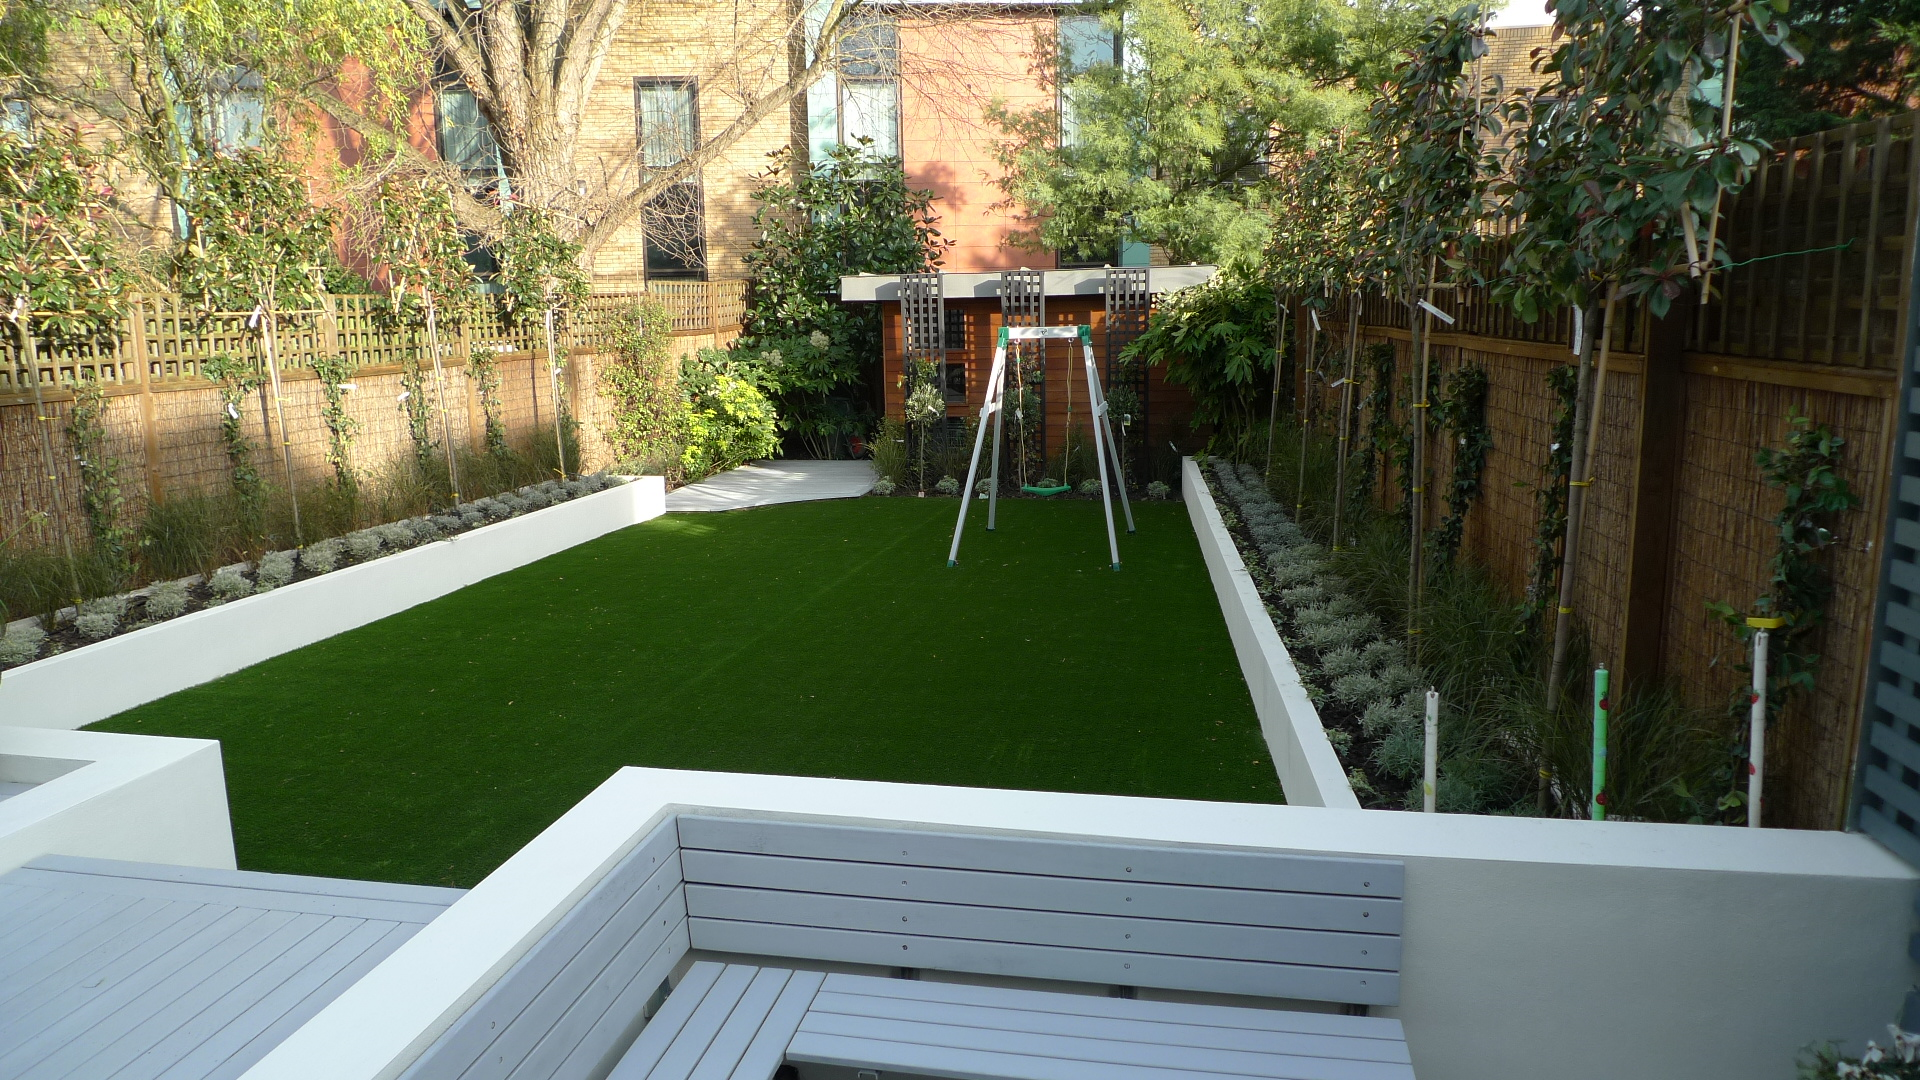 Modern garden design ideas london london garden design for Large front garden ideas